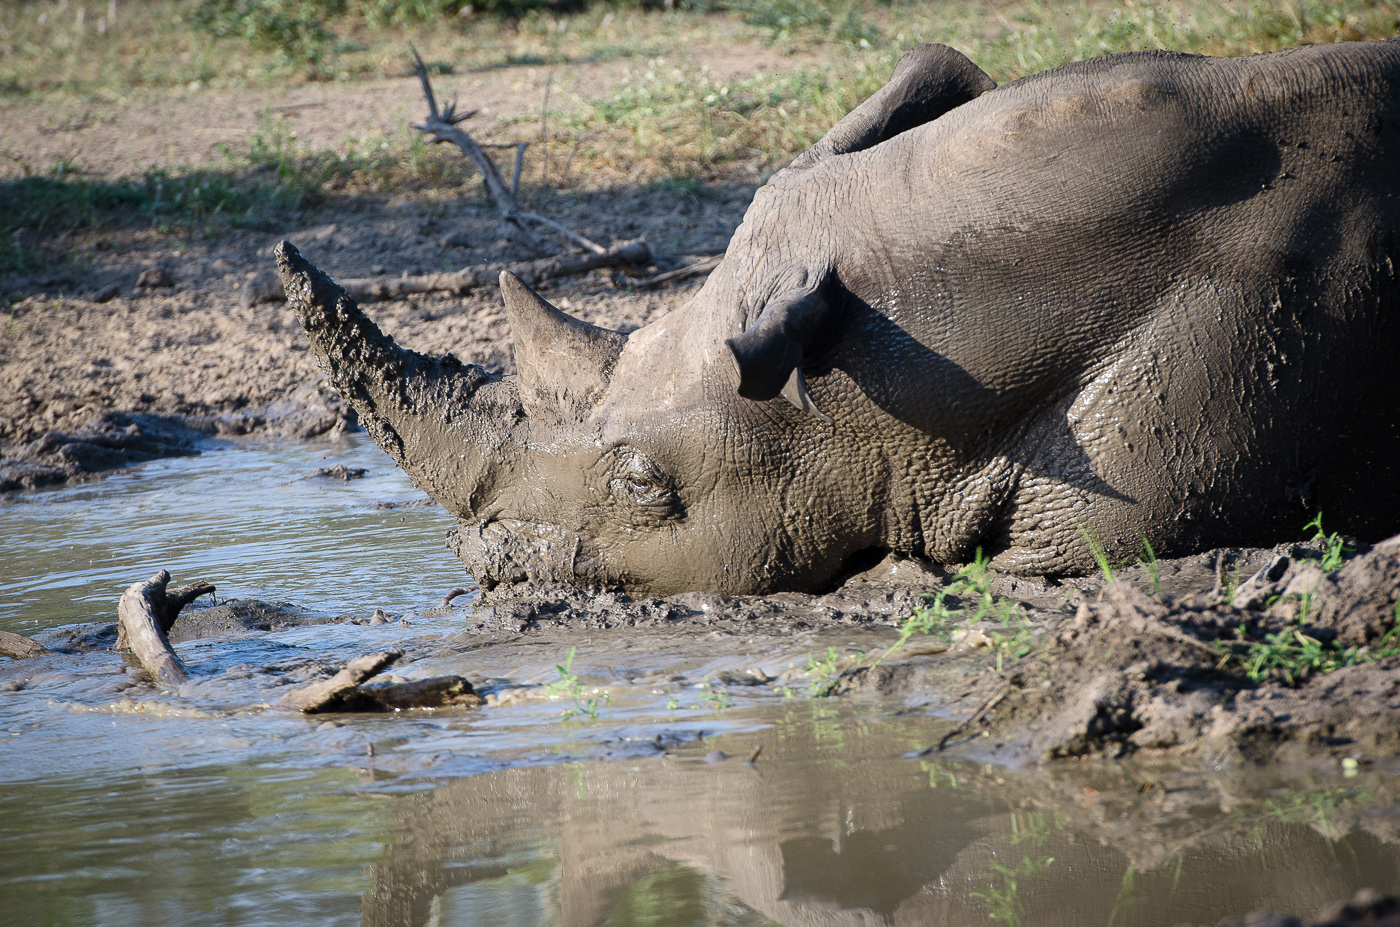 Rhino mud bath 2. KP